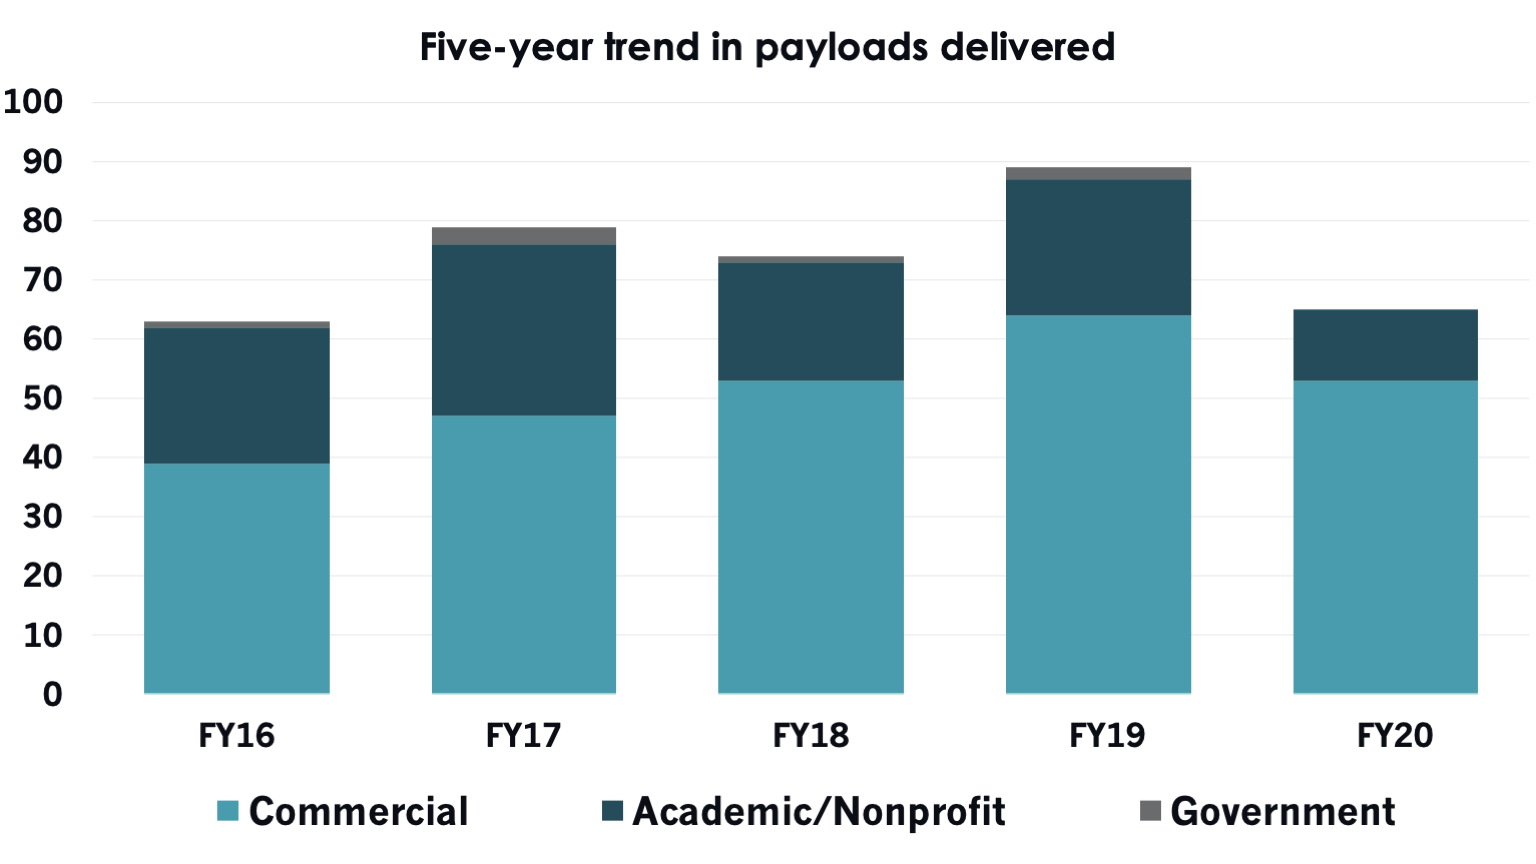 Five year payloads delivered